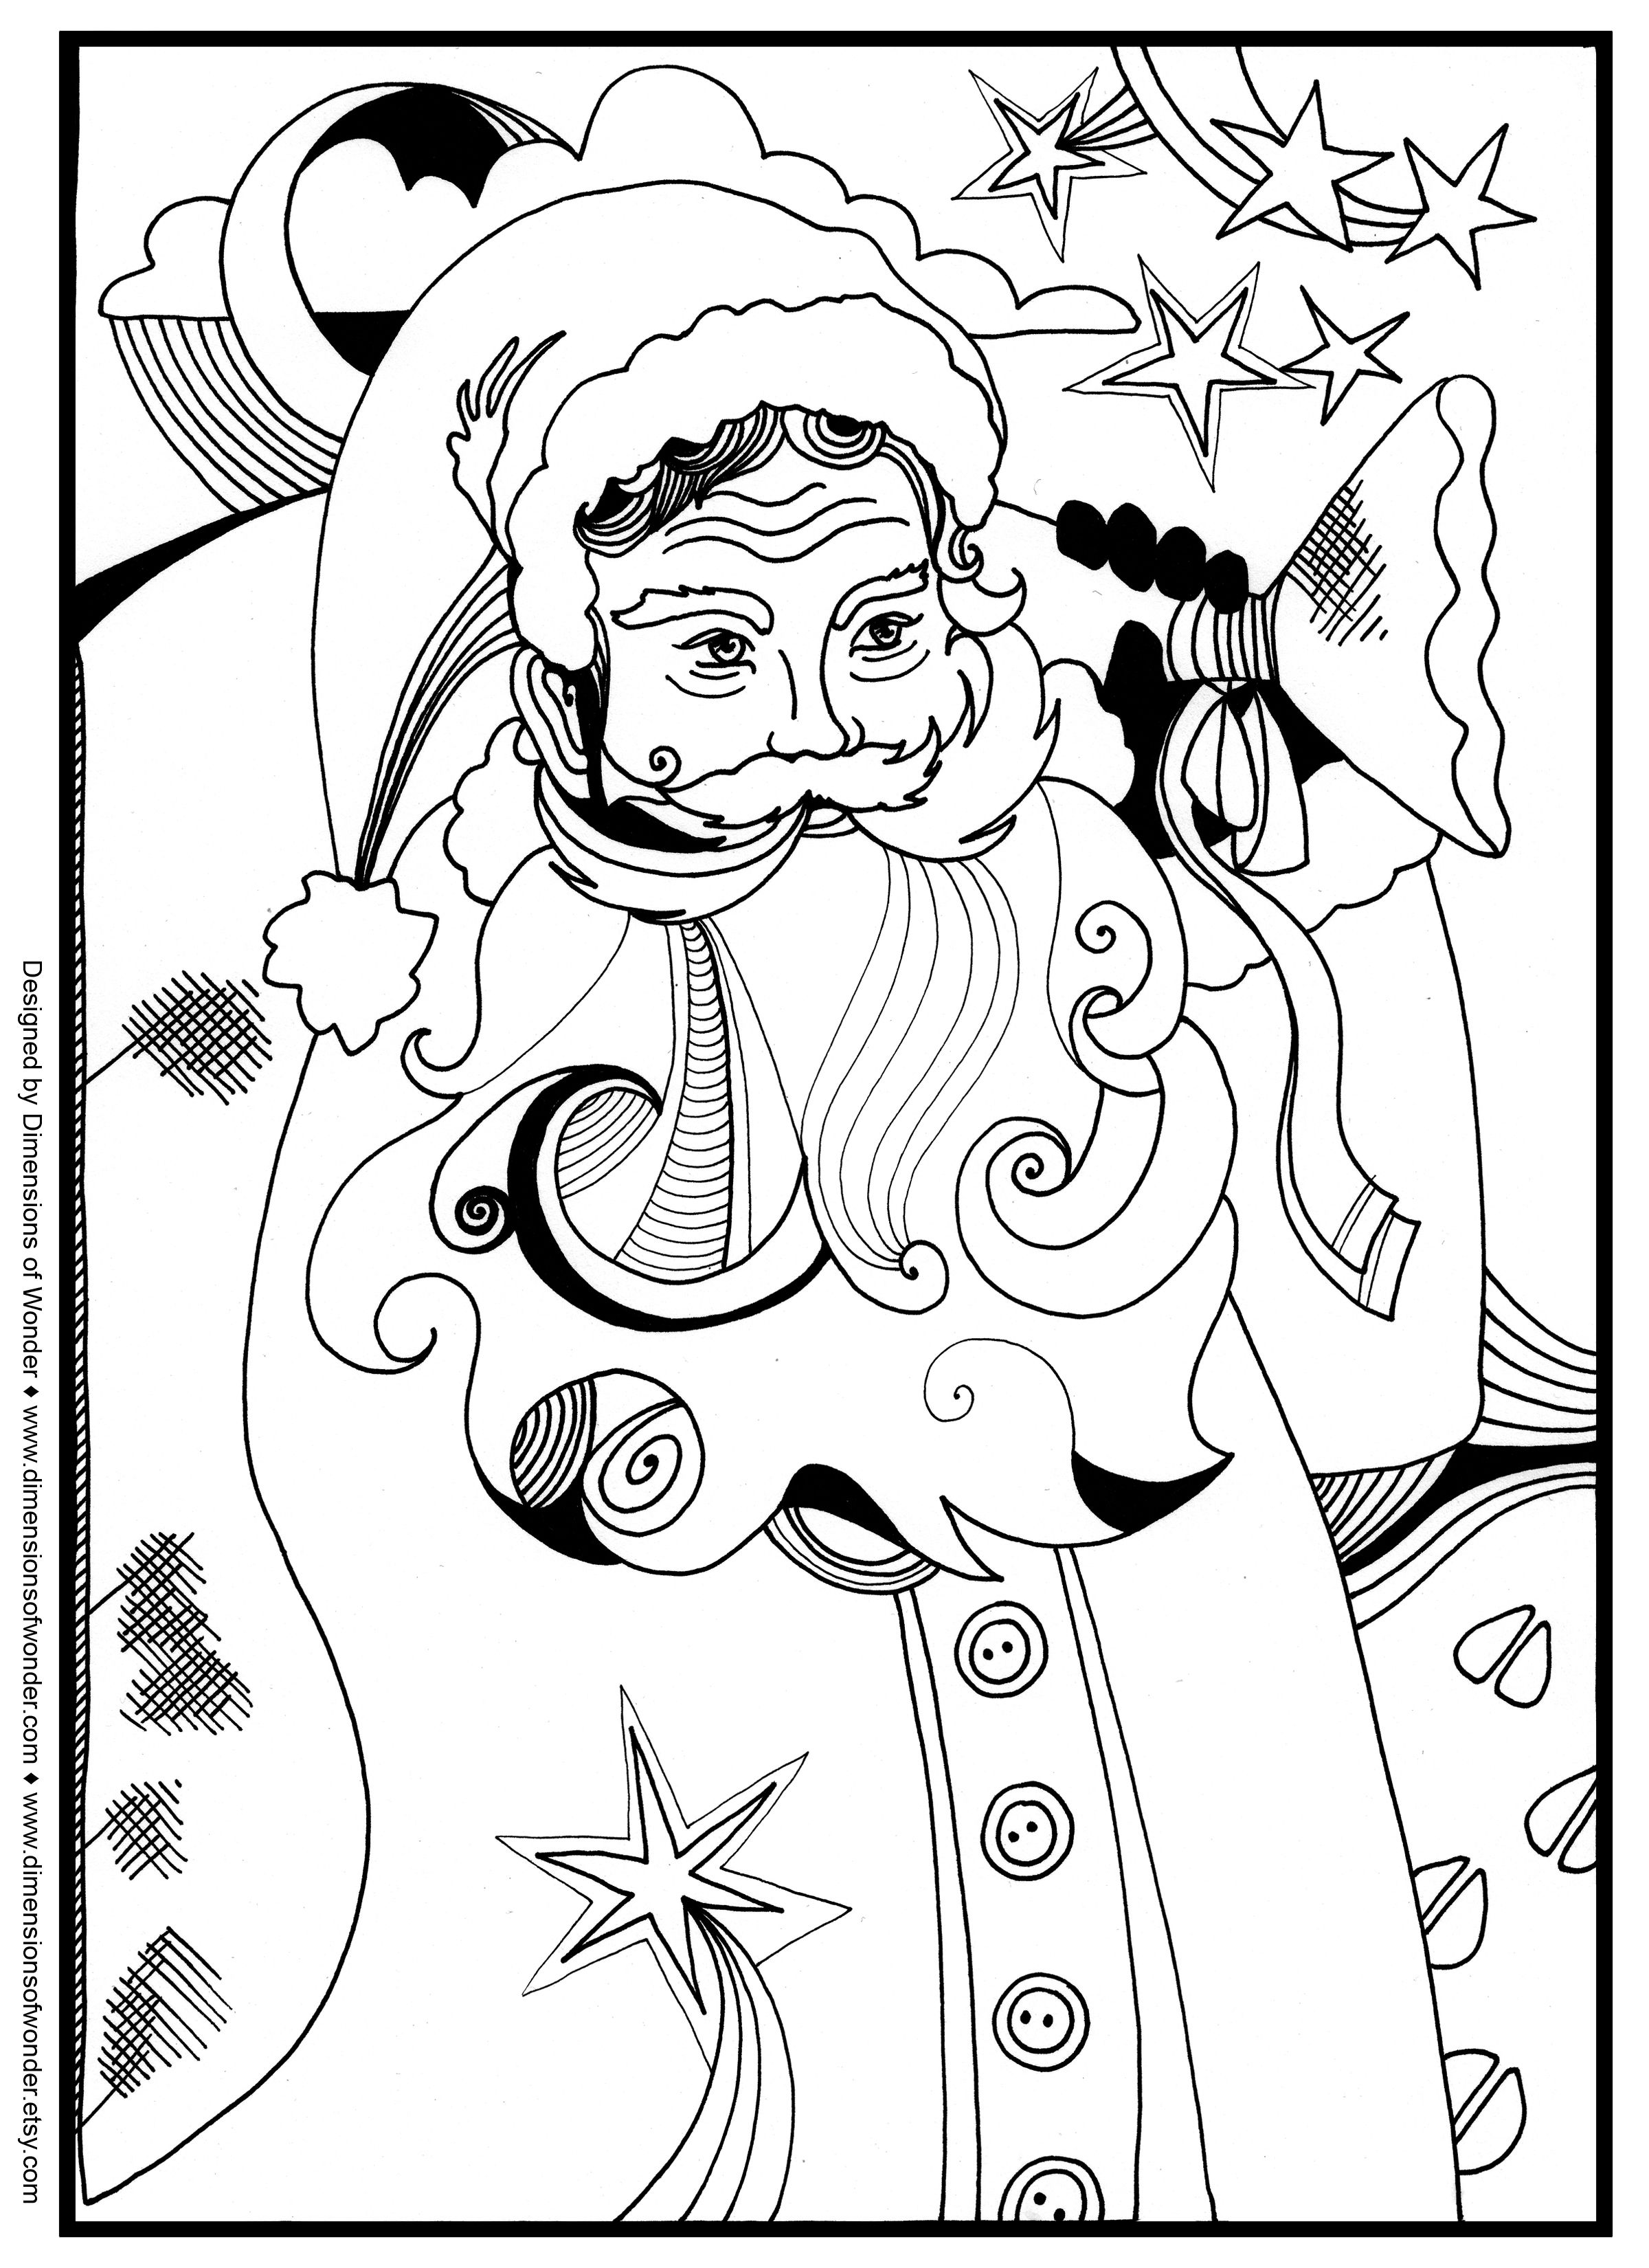 santa christmas around the world coloring pages kidsfreecoloringnet free download kids coloring printable - World Coloring Page